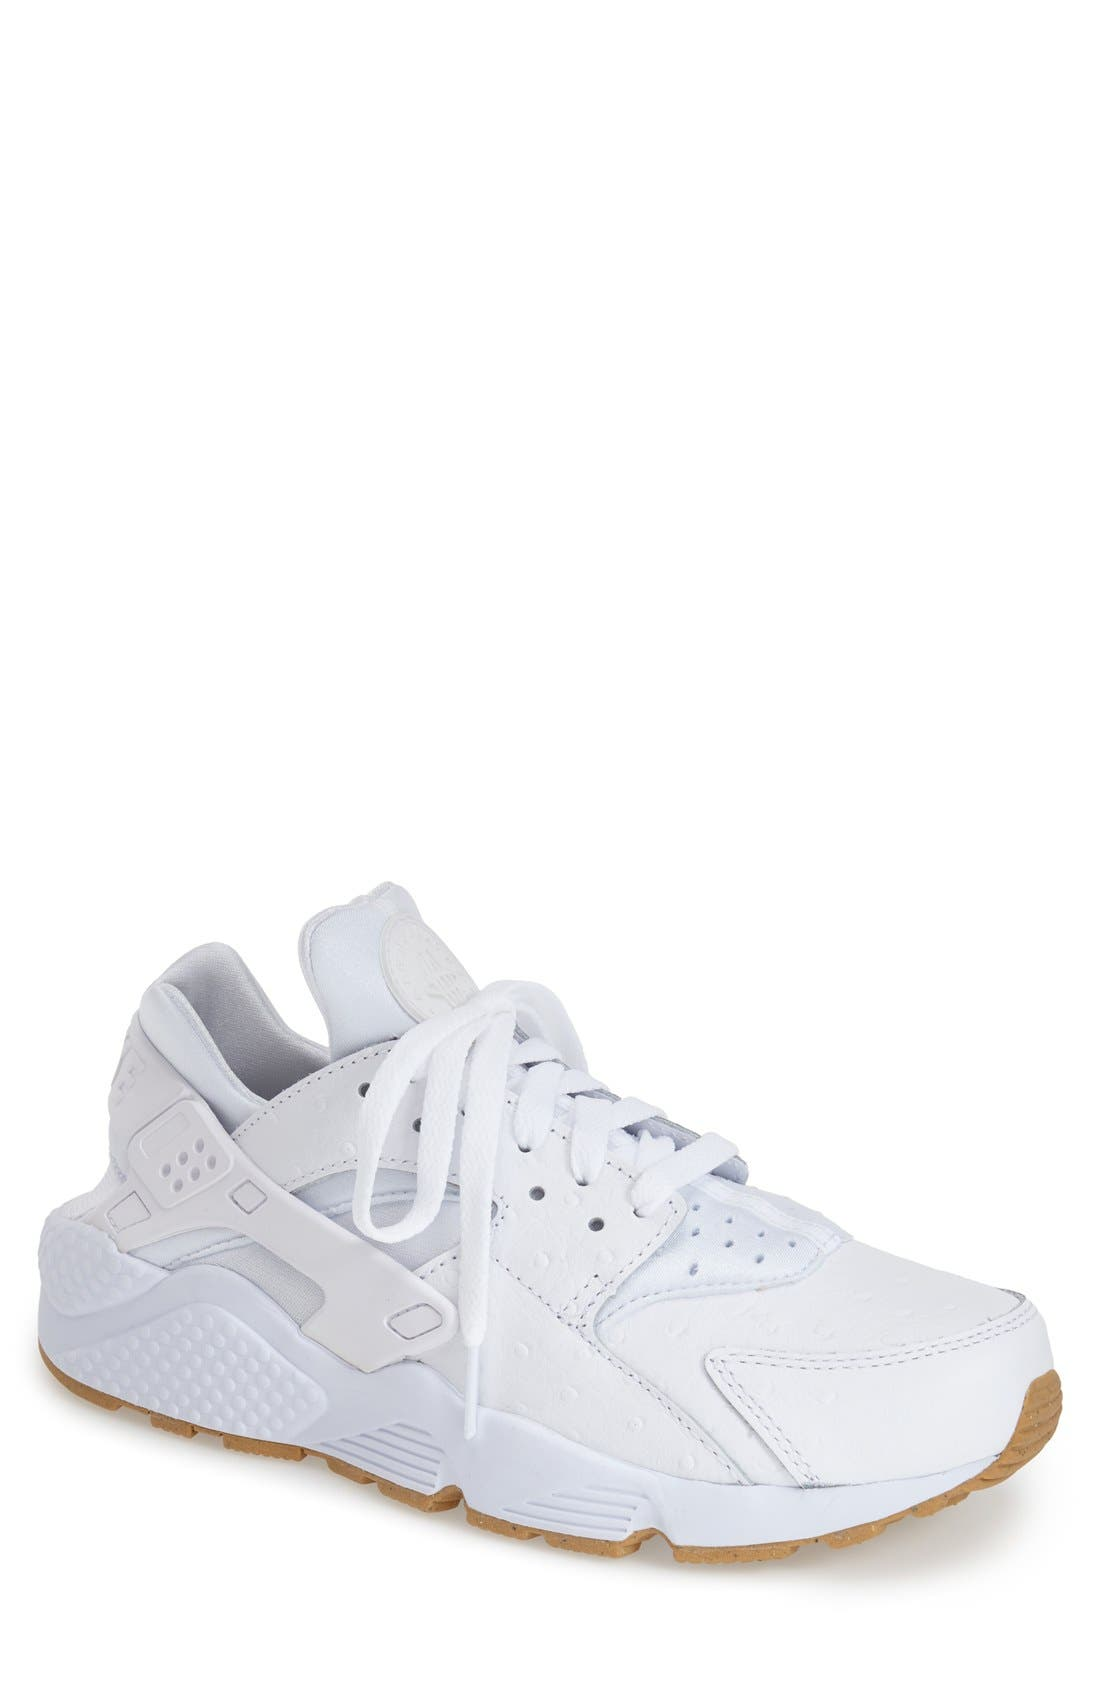 'Air Huarache Run Premium' Sneaker, Main, color, 111